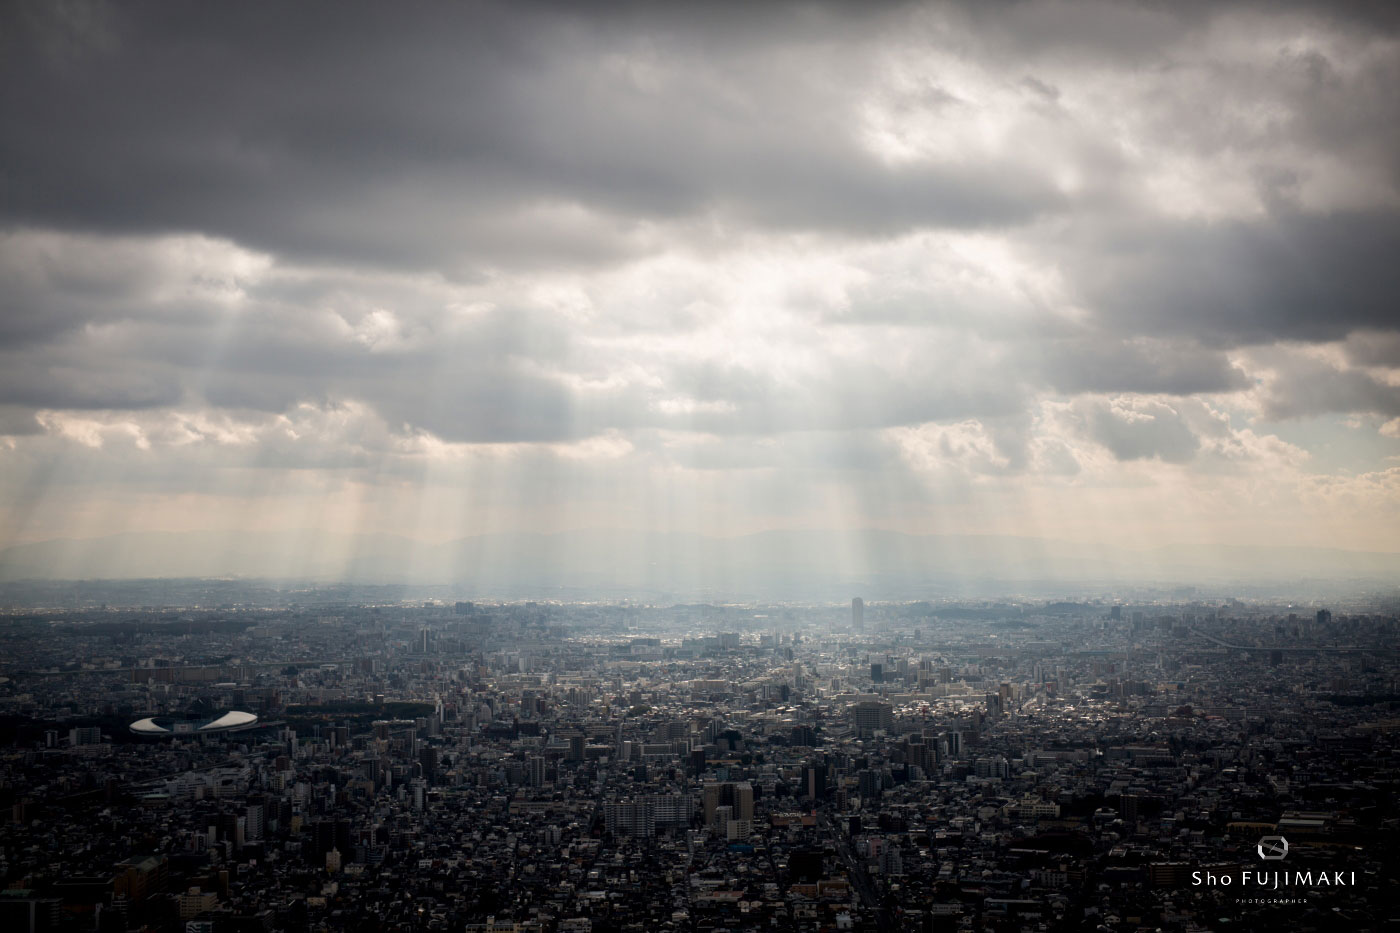 Osaka from the top of the 300m tall Abeno Harukas tower, site of the Harukas Skyrun. ©Sho Fujimaki